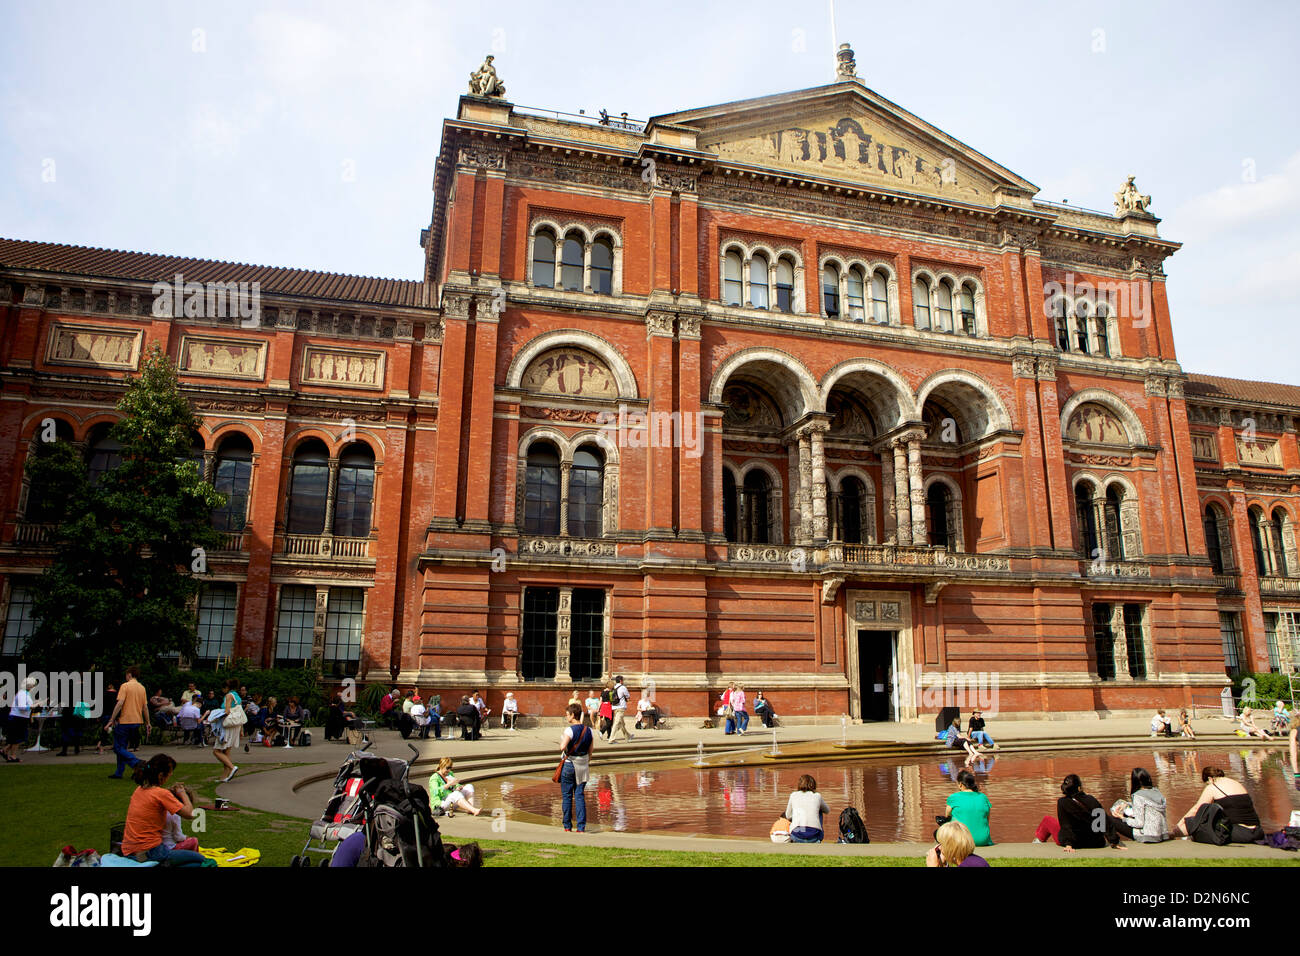 Victoria and Albert Museum (V&A), South Kensington, London, England, United Kingdom, Europe - Stock Image